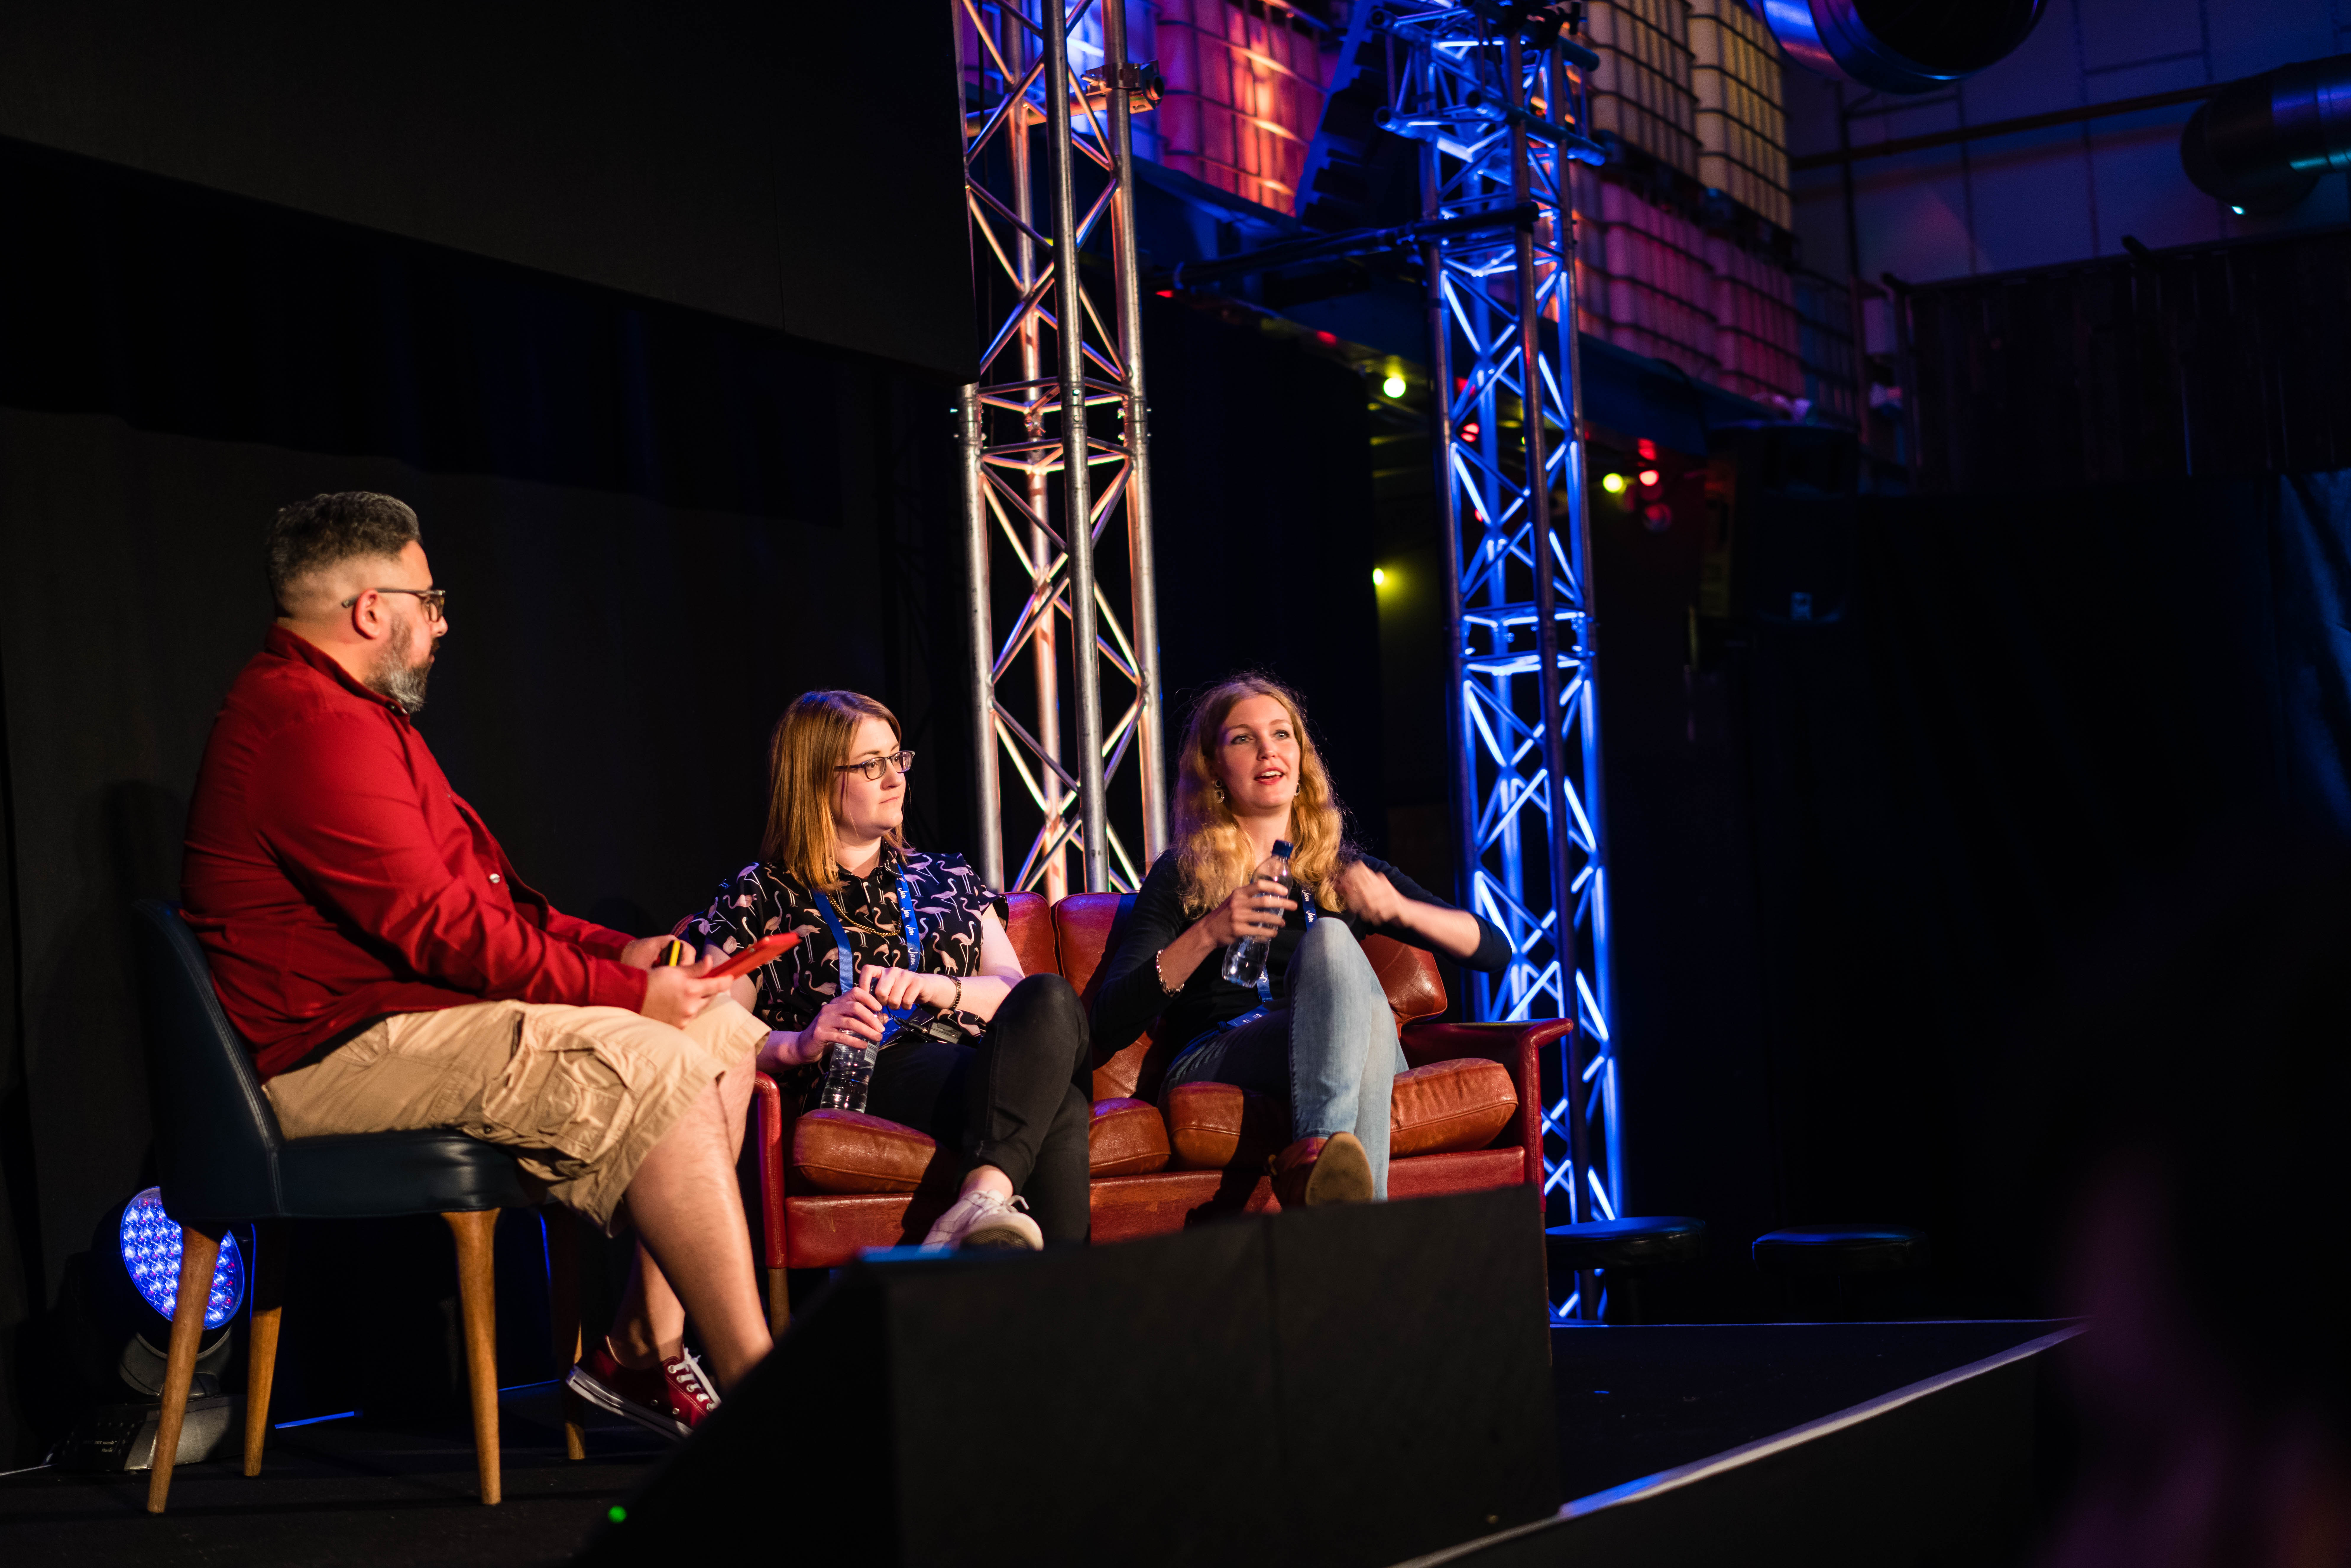 Three people talk on stage at the JAM 2017 event